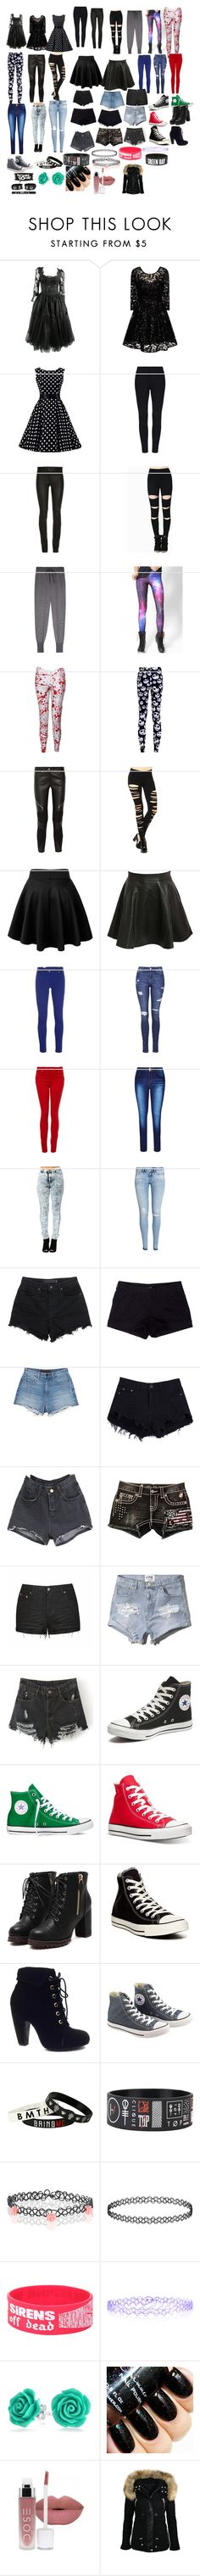 """""""More stuff"""" by missmurder1974 ❤ liked on Polyvore featuring beauty, Chi Chi, Clu, WithChic, Givenchy, Pilot, M Missoni, Topshop, Paige Denim and City Chic"""